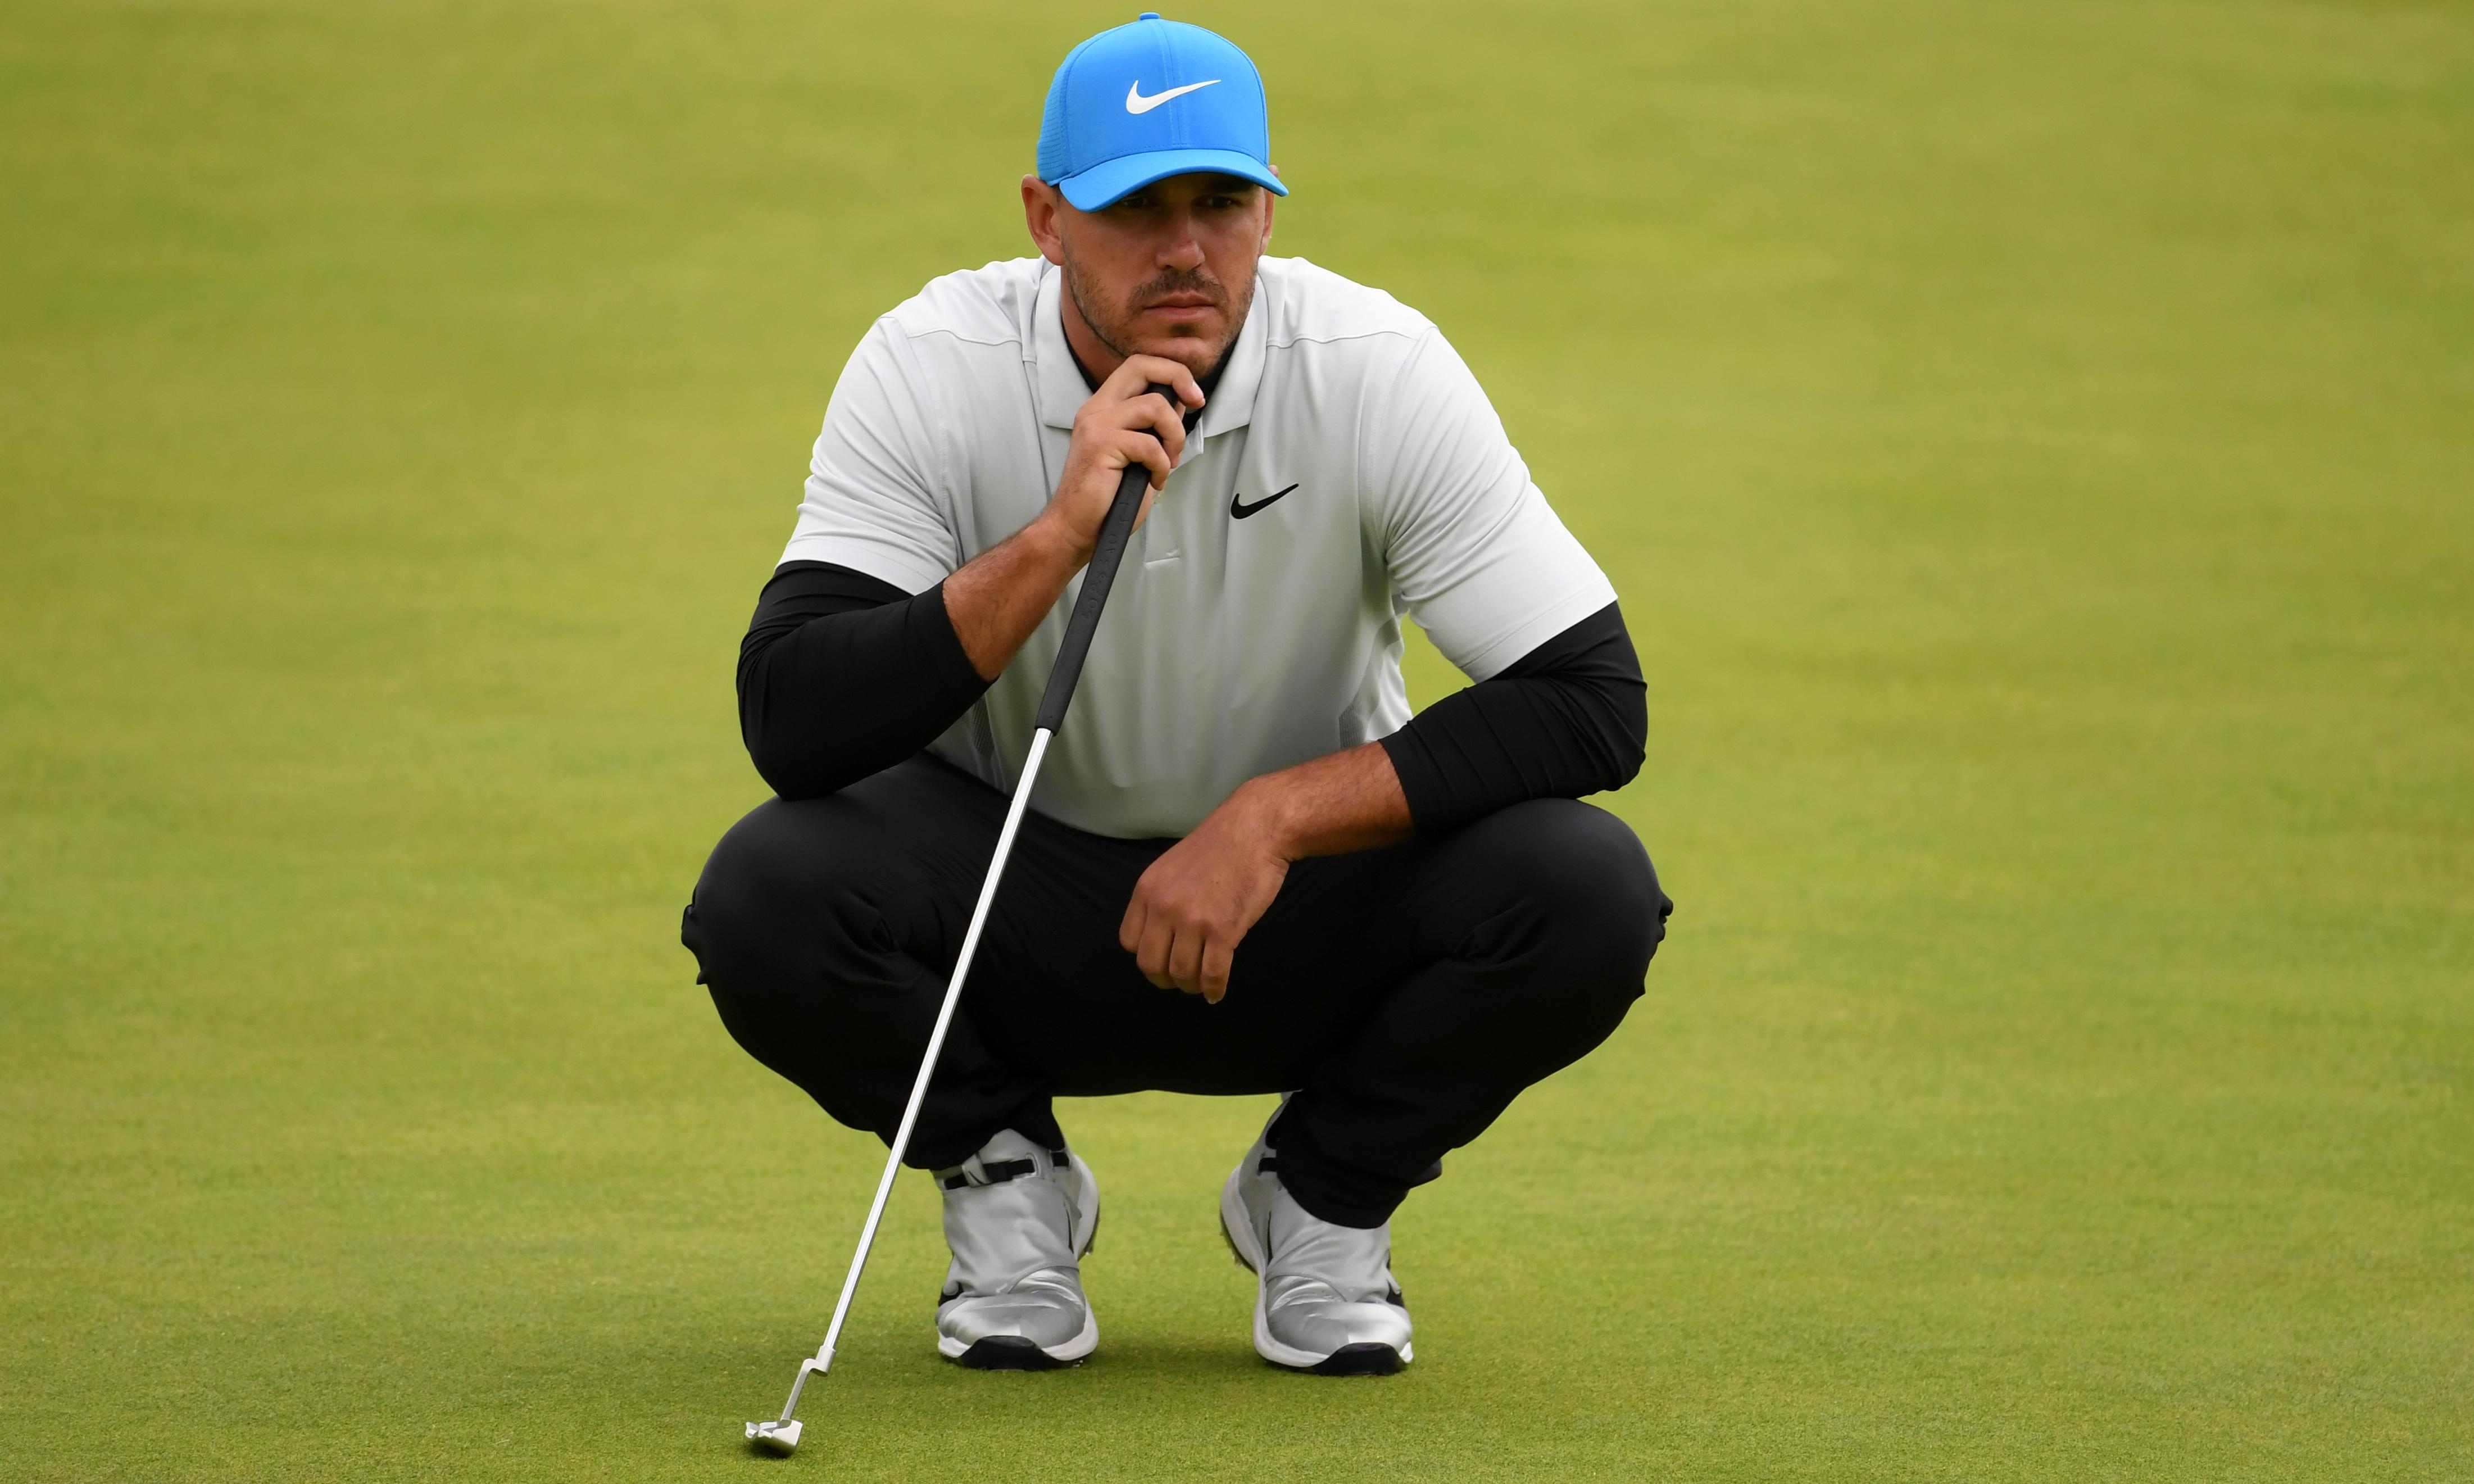 Brooks Koepka insists he can win the Open if he gets the rub of the green